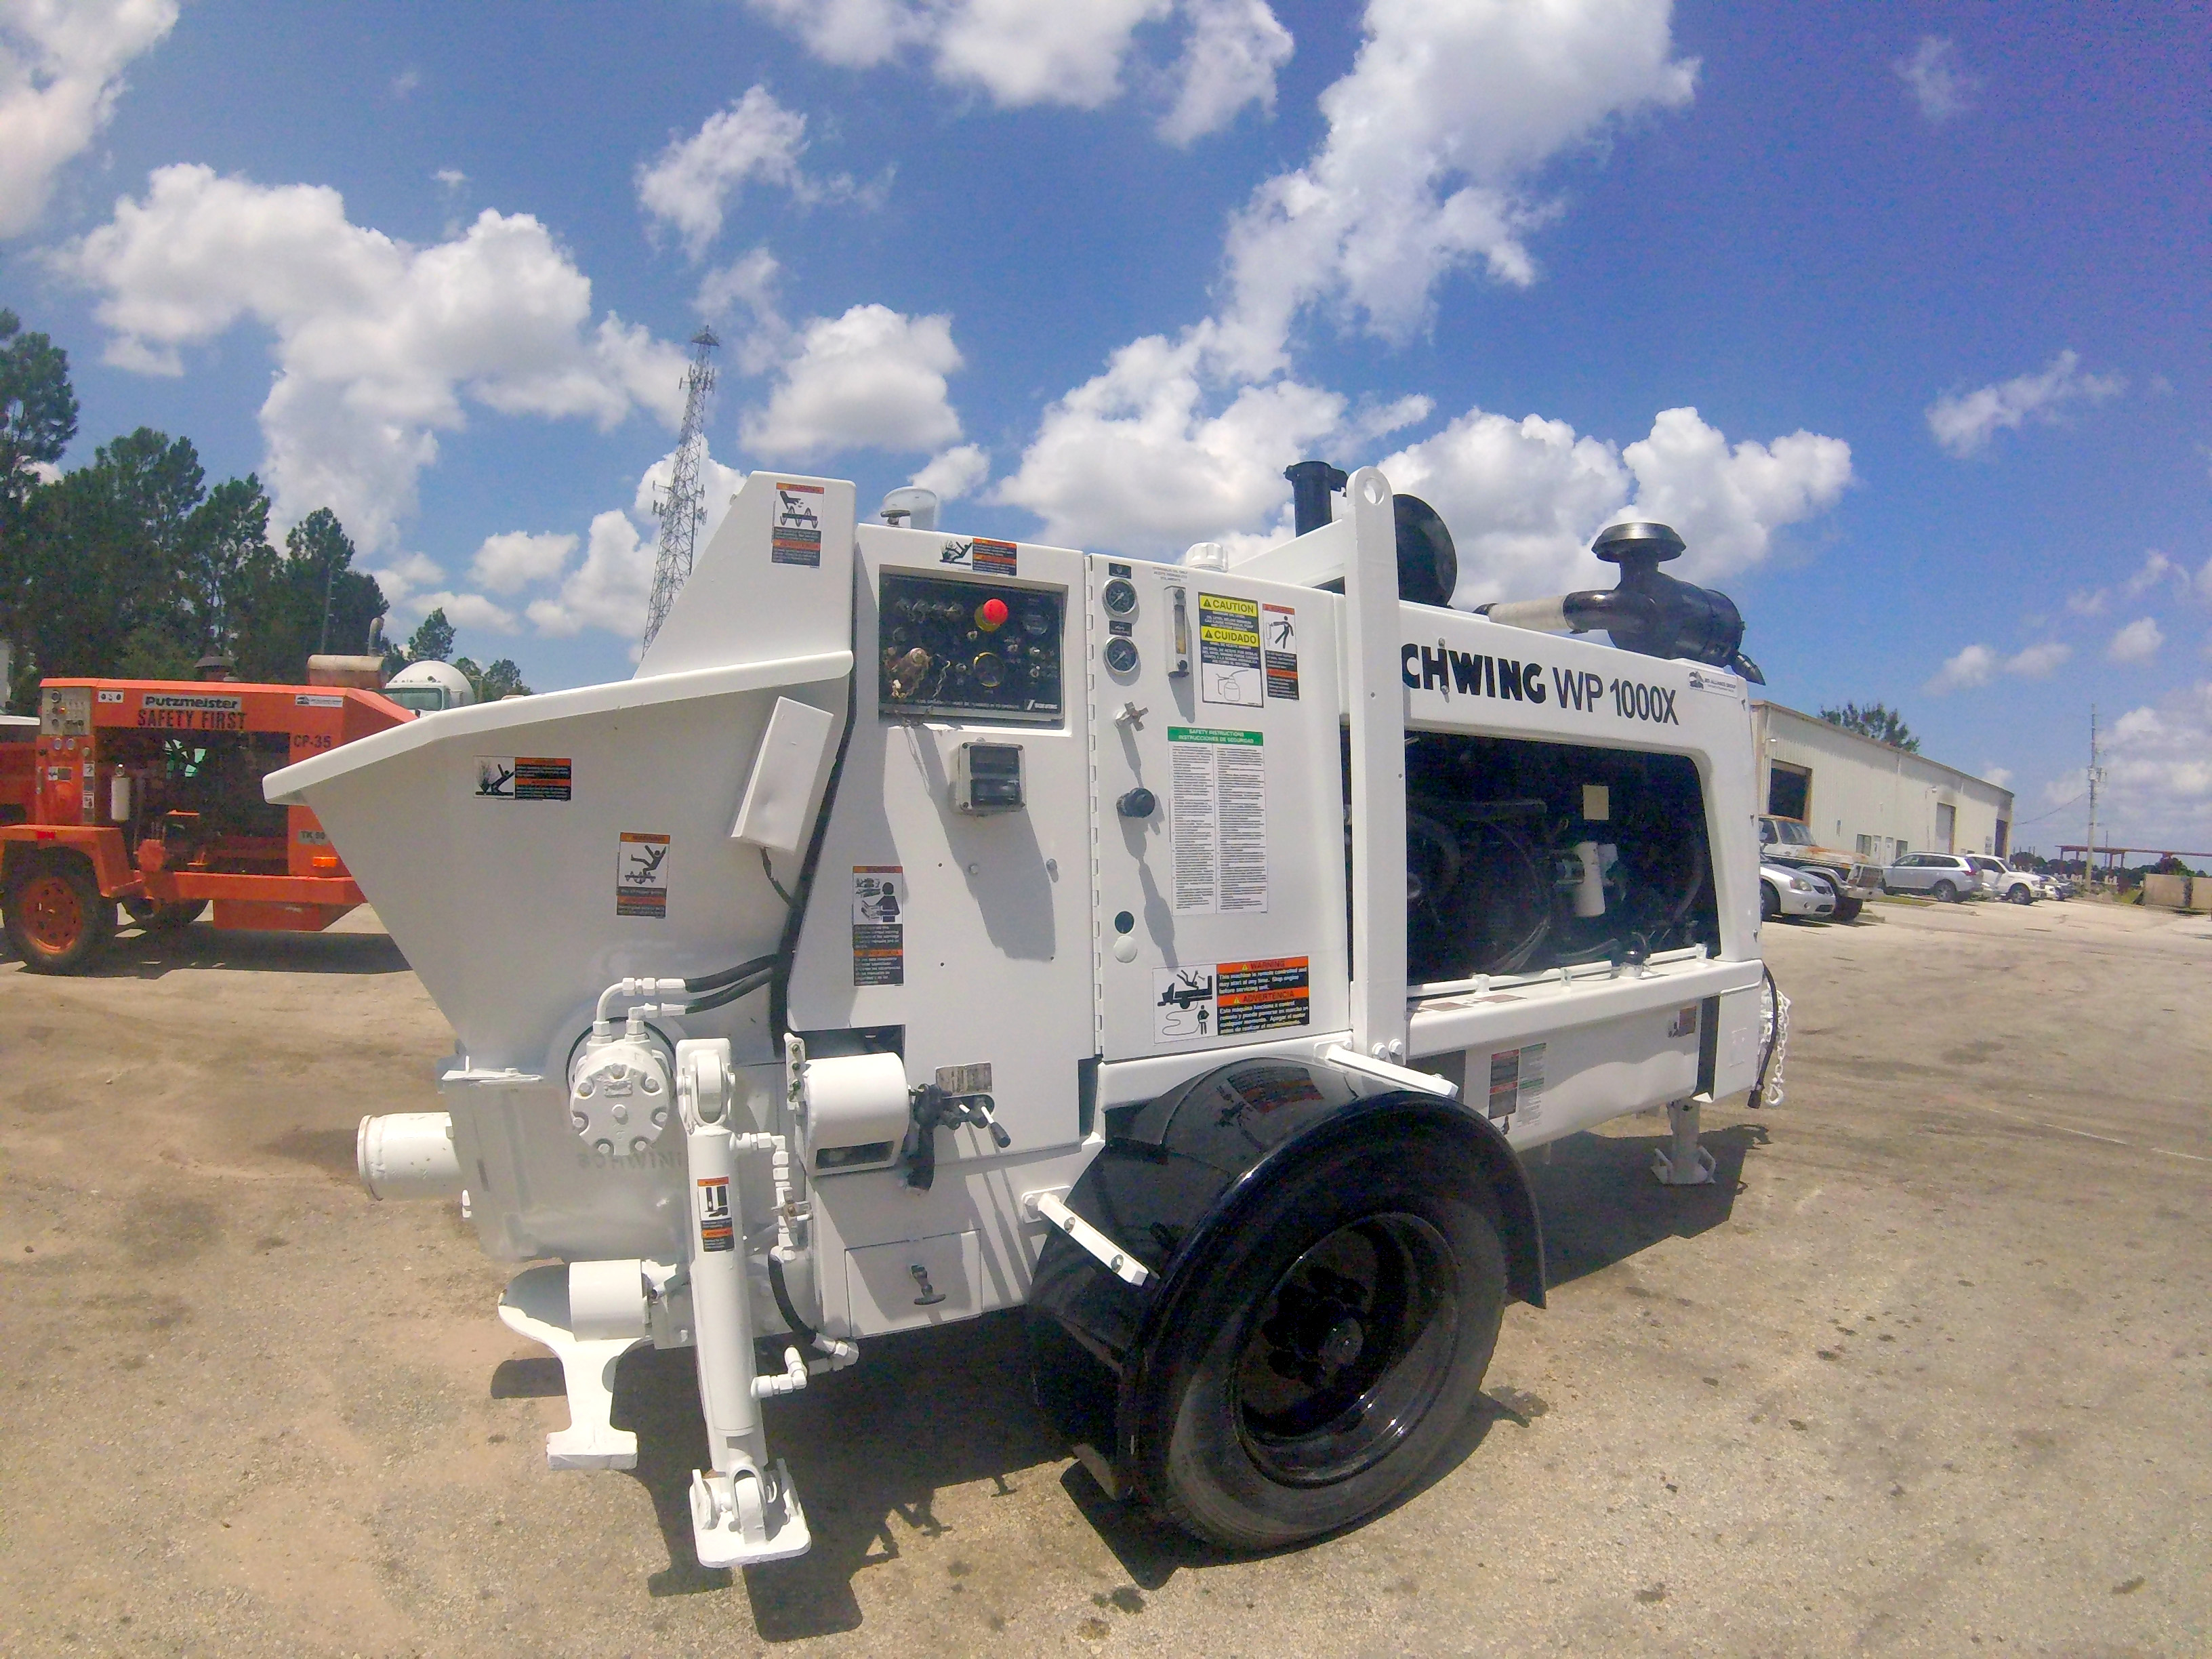 Schwing concrete trailer pump for sale | Refurbished & Ready to go